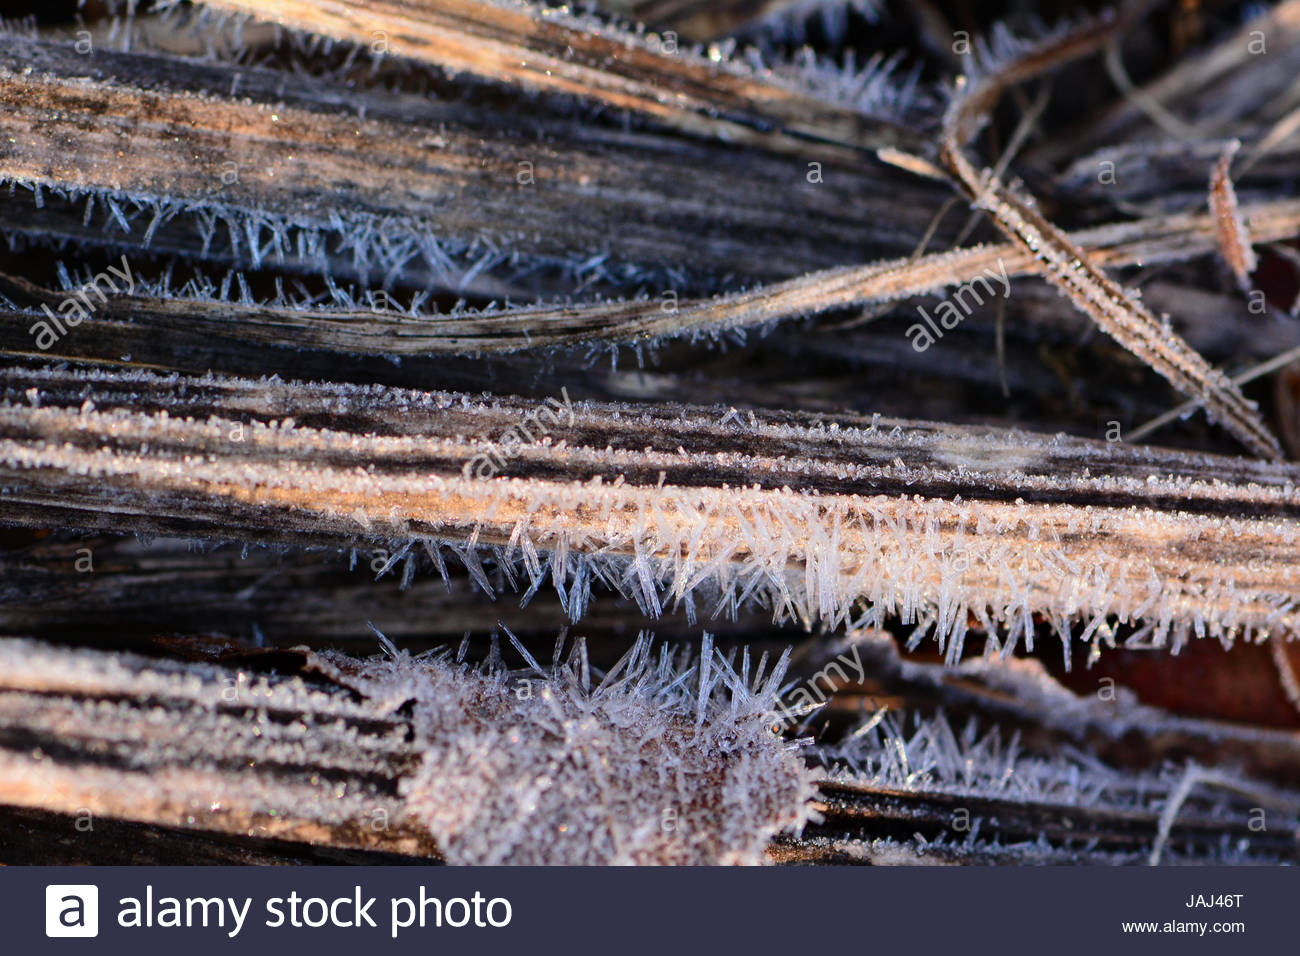 Hoarfrost formed on dead plant stalks after a night of subfreezing weather. - Stock Image